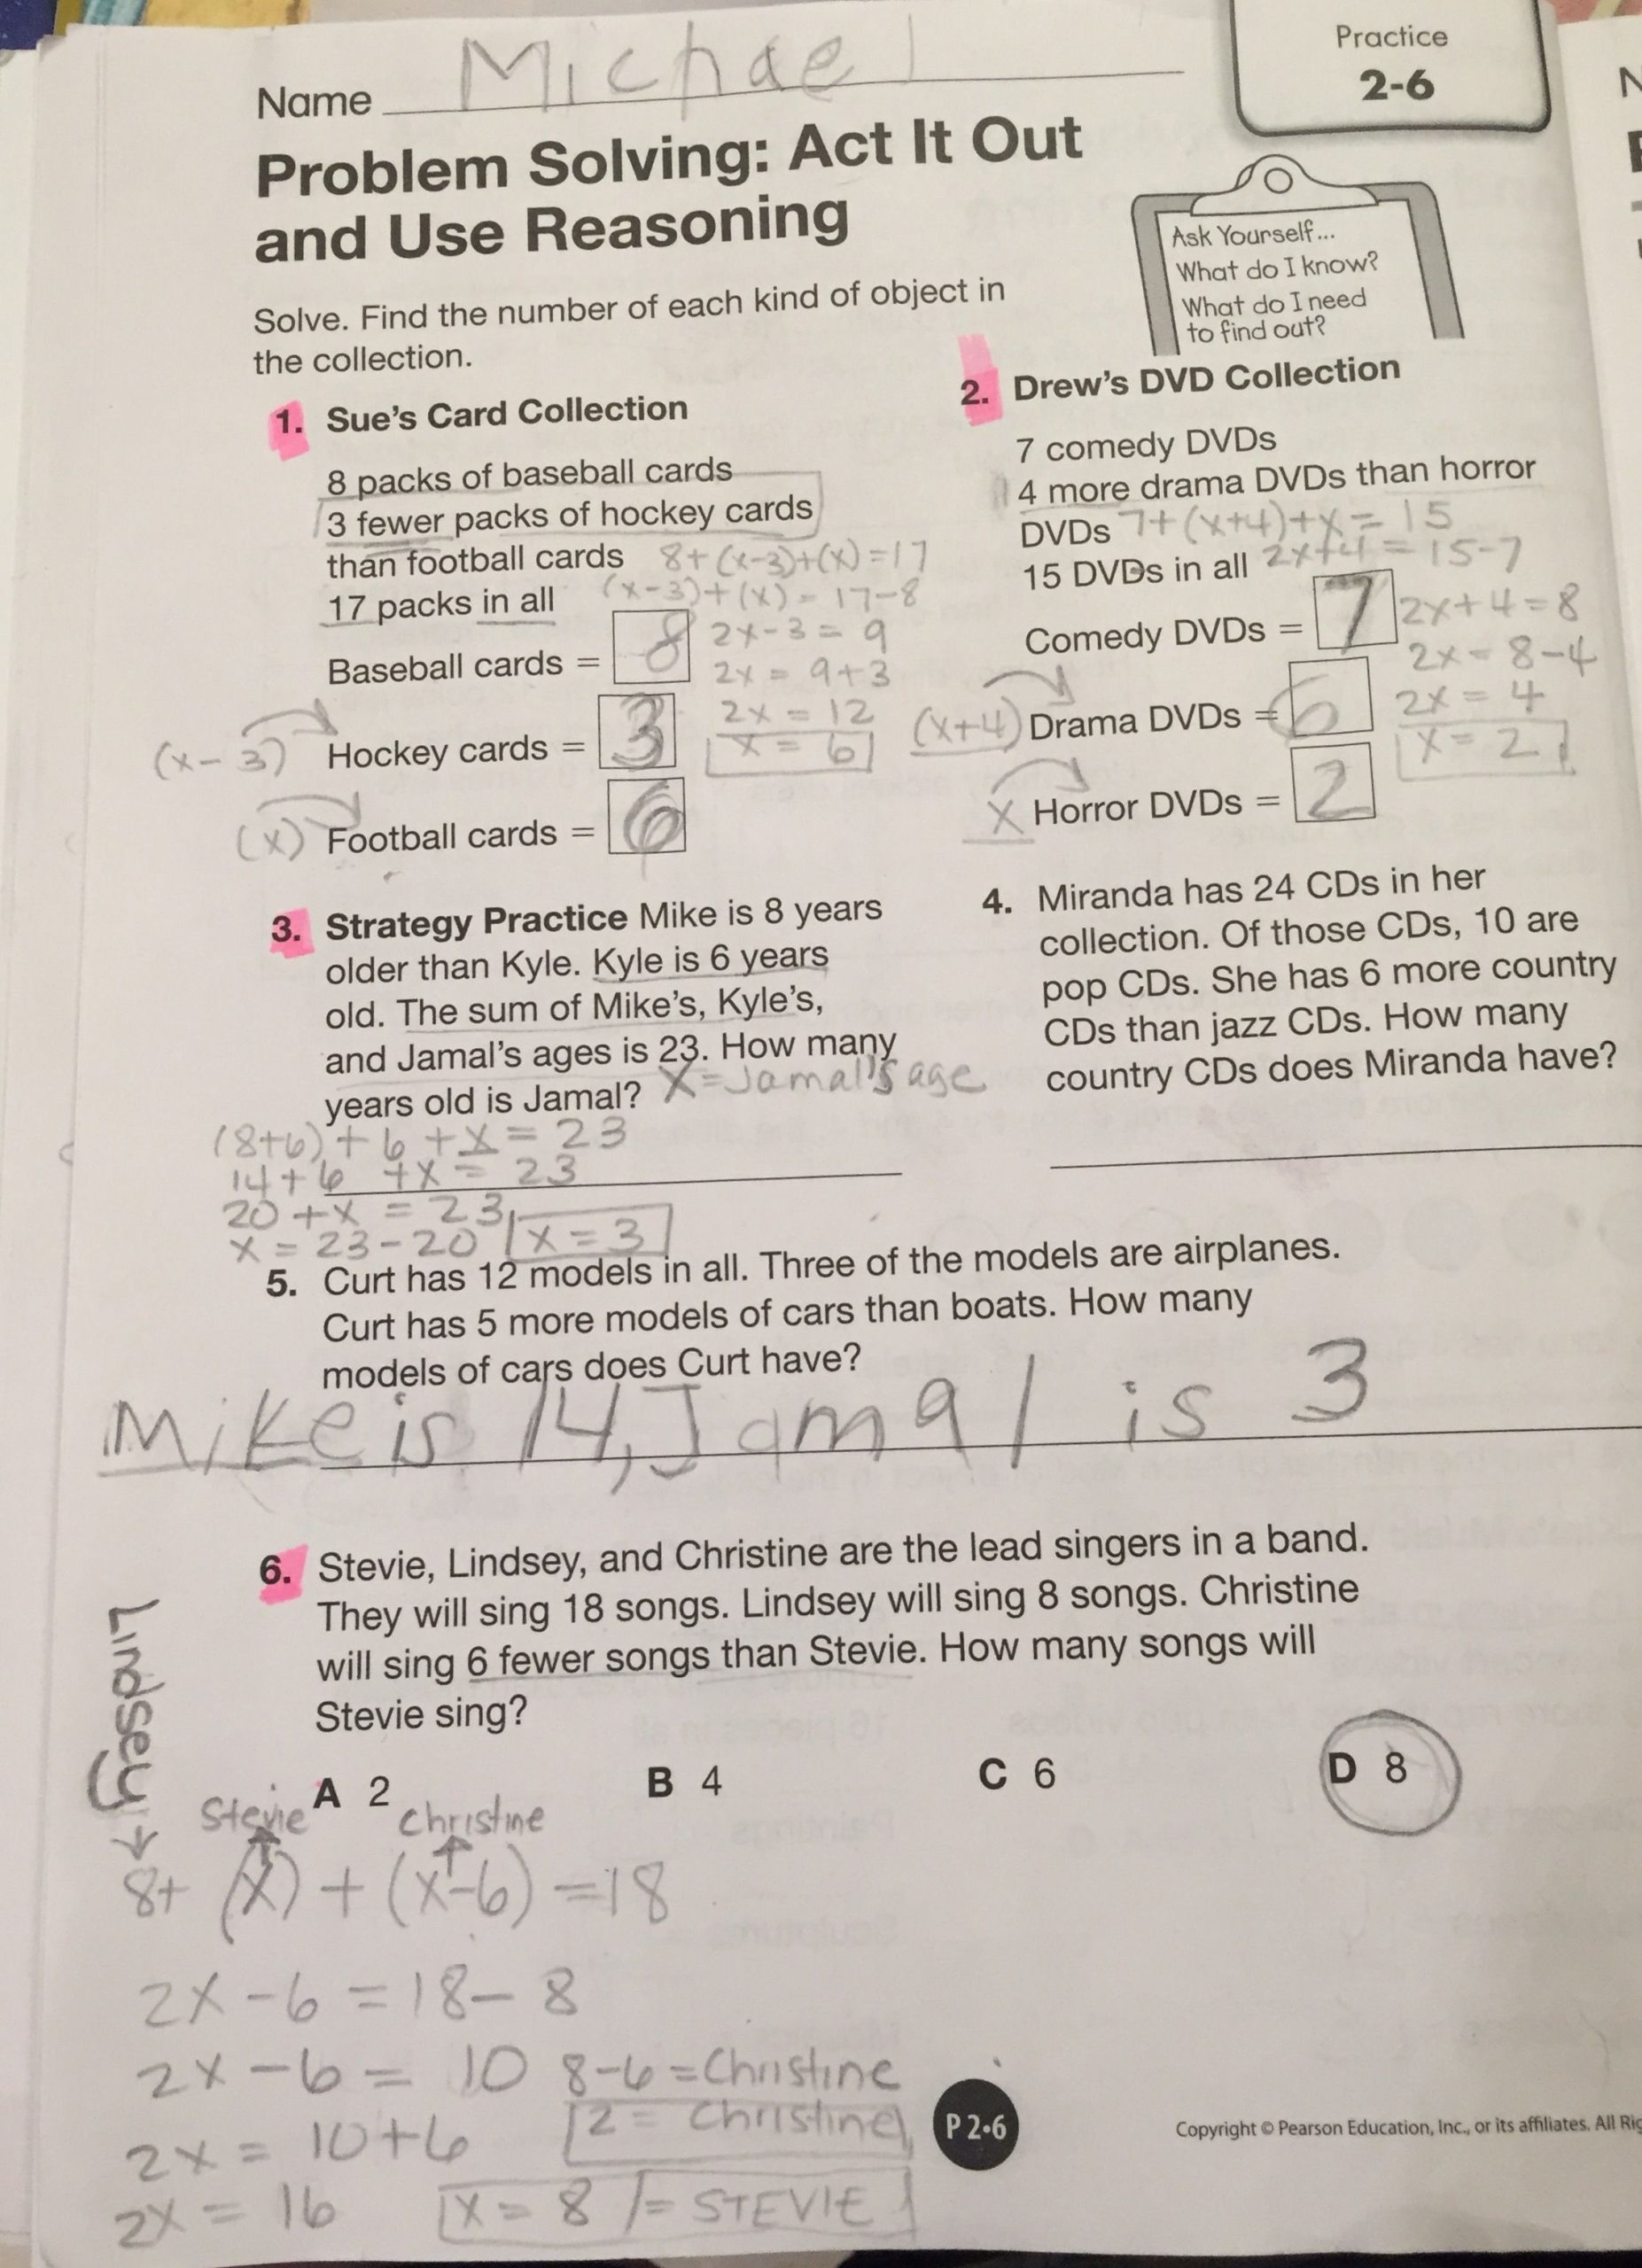 Act Prep Math Worksheets Pdf Envision Math Grade 4 topic 2 6 Problem solving Act It Out